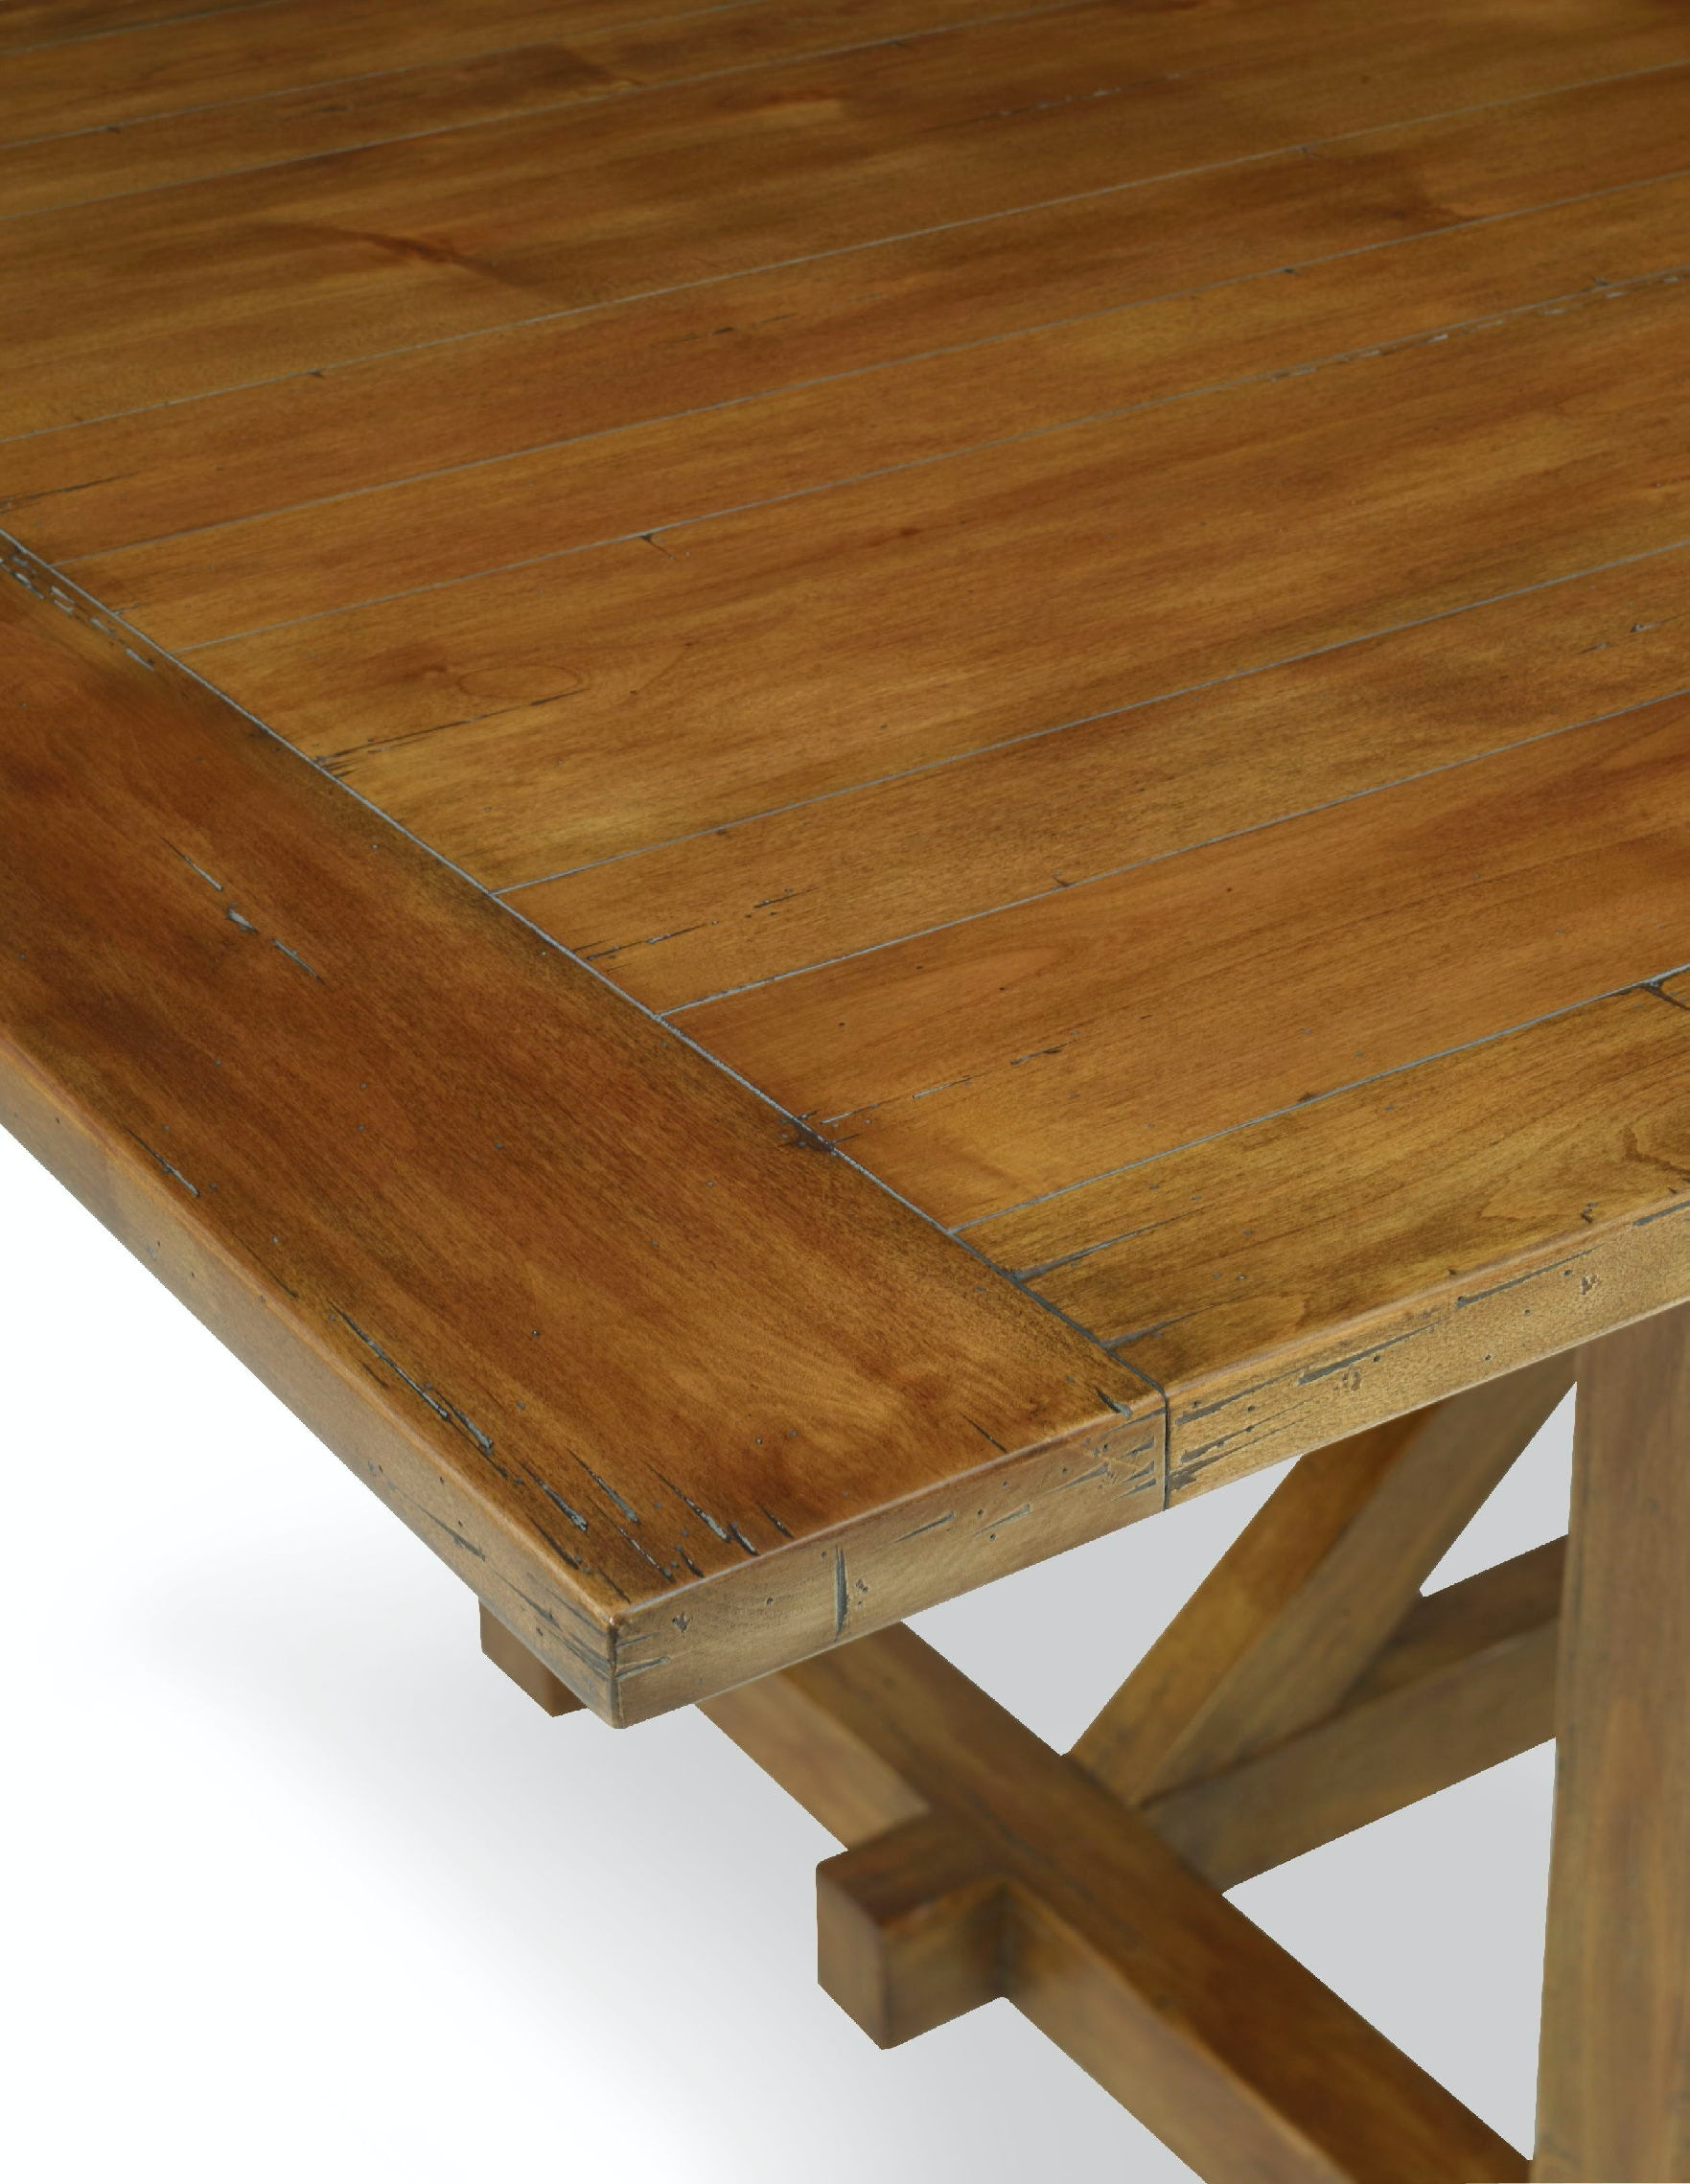 Charming Chaddock Oast Dining Table CE0886 · Chaddock Oast Dining Table CE0886